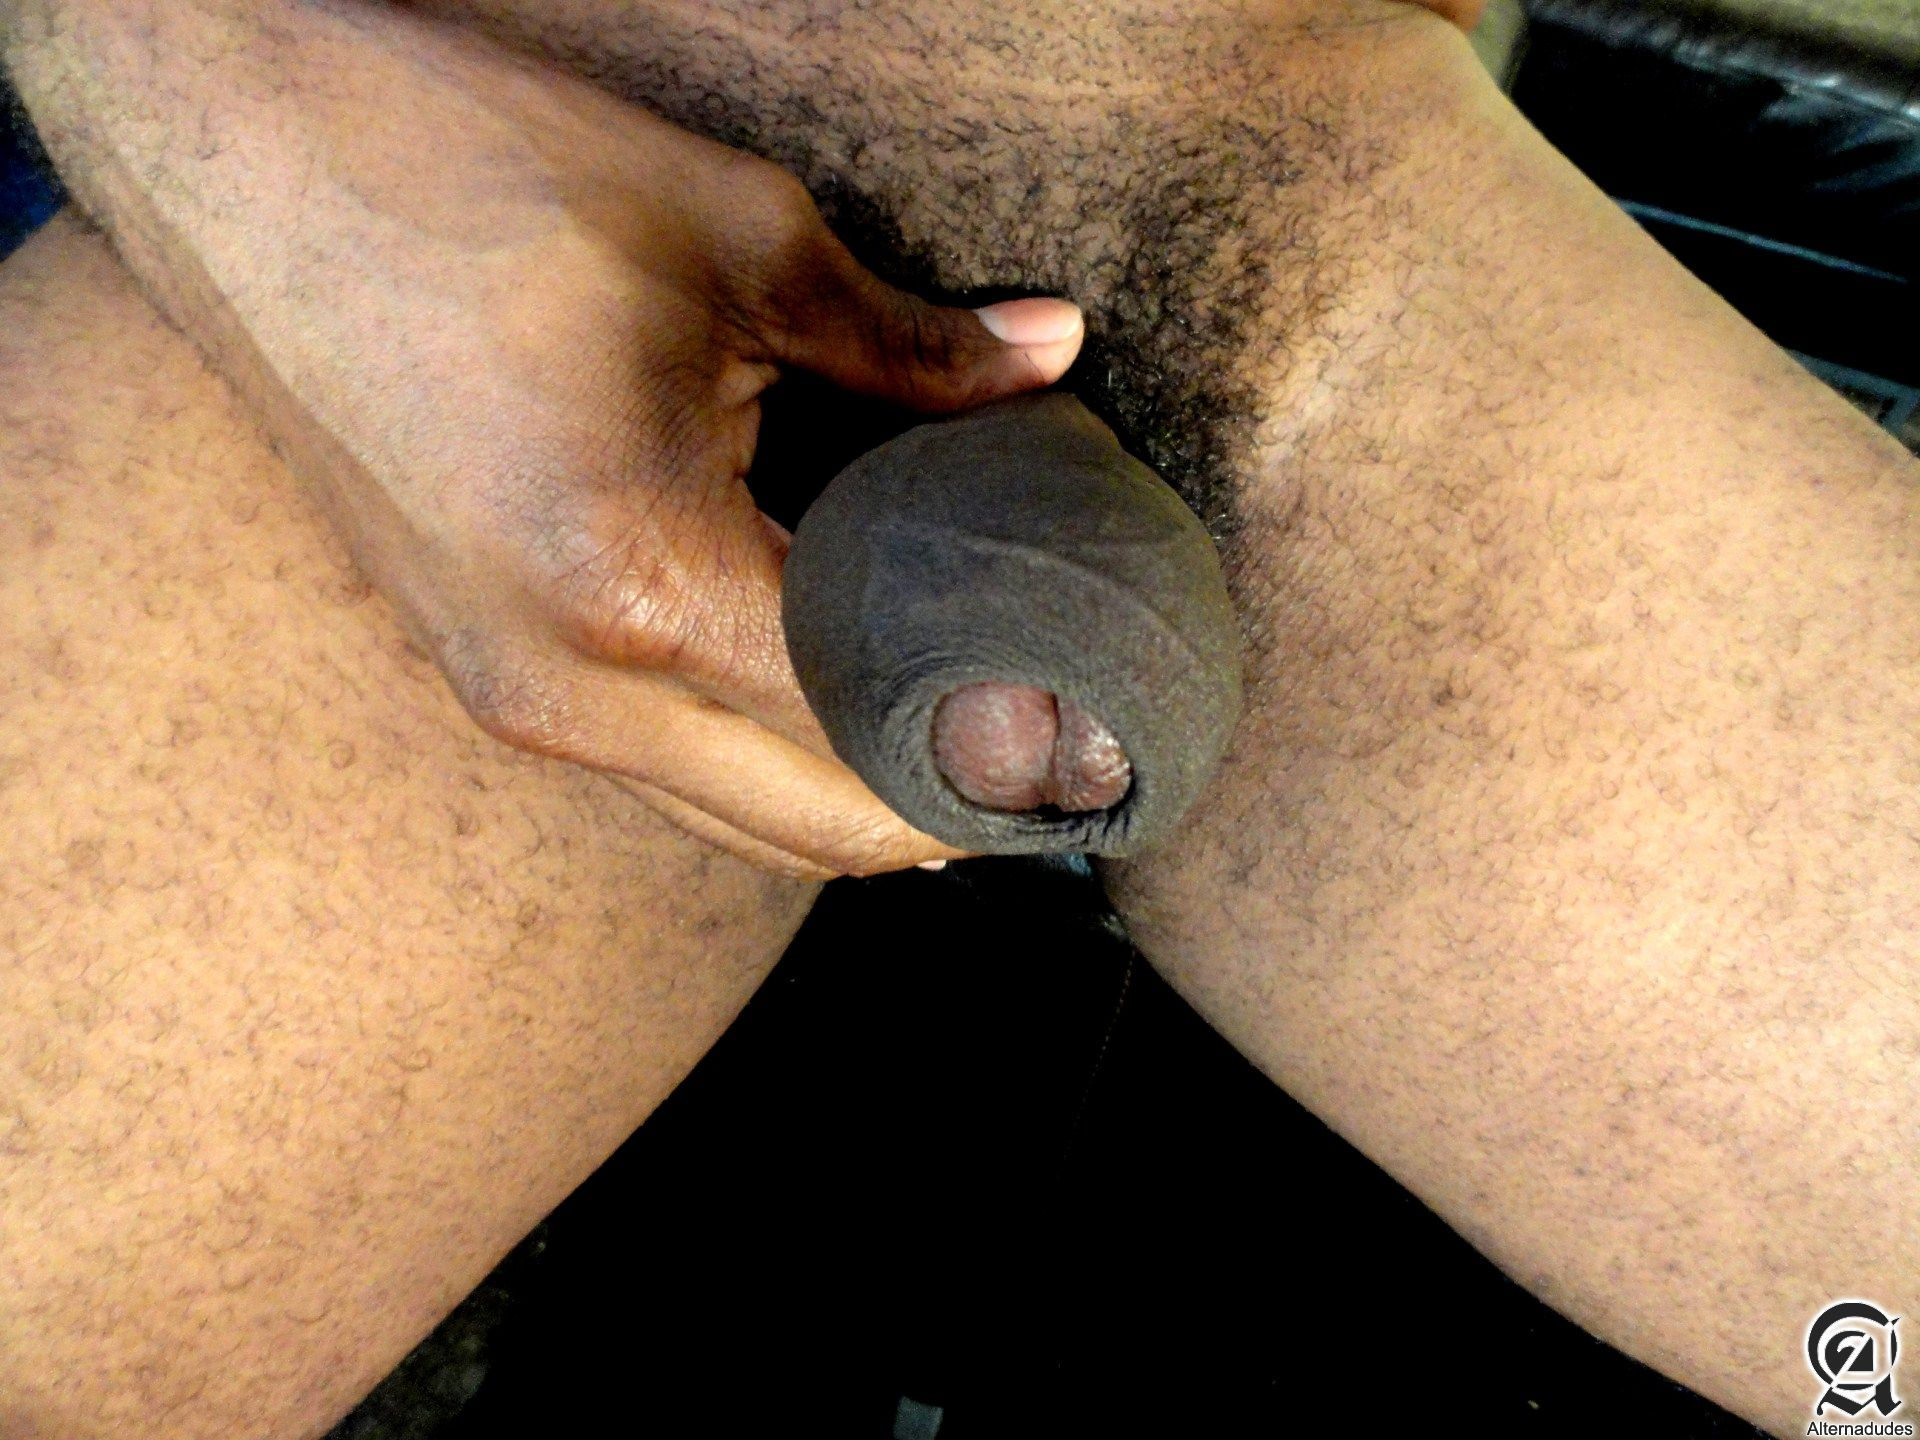 Alternadudes-Kamrun-big-black-uncut-cock-with-cum-06 Sexy Amateur Black Hipster with a Huge Uncut Black Cock Shoots A Load